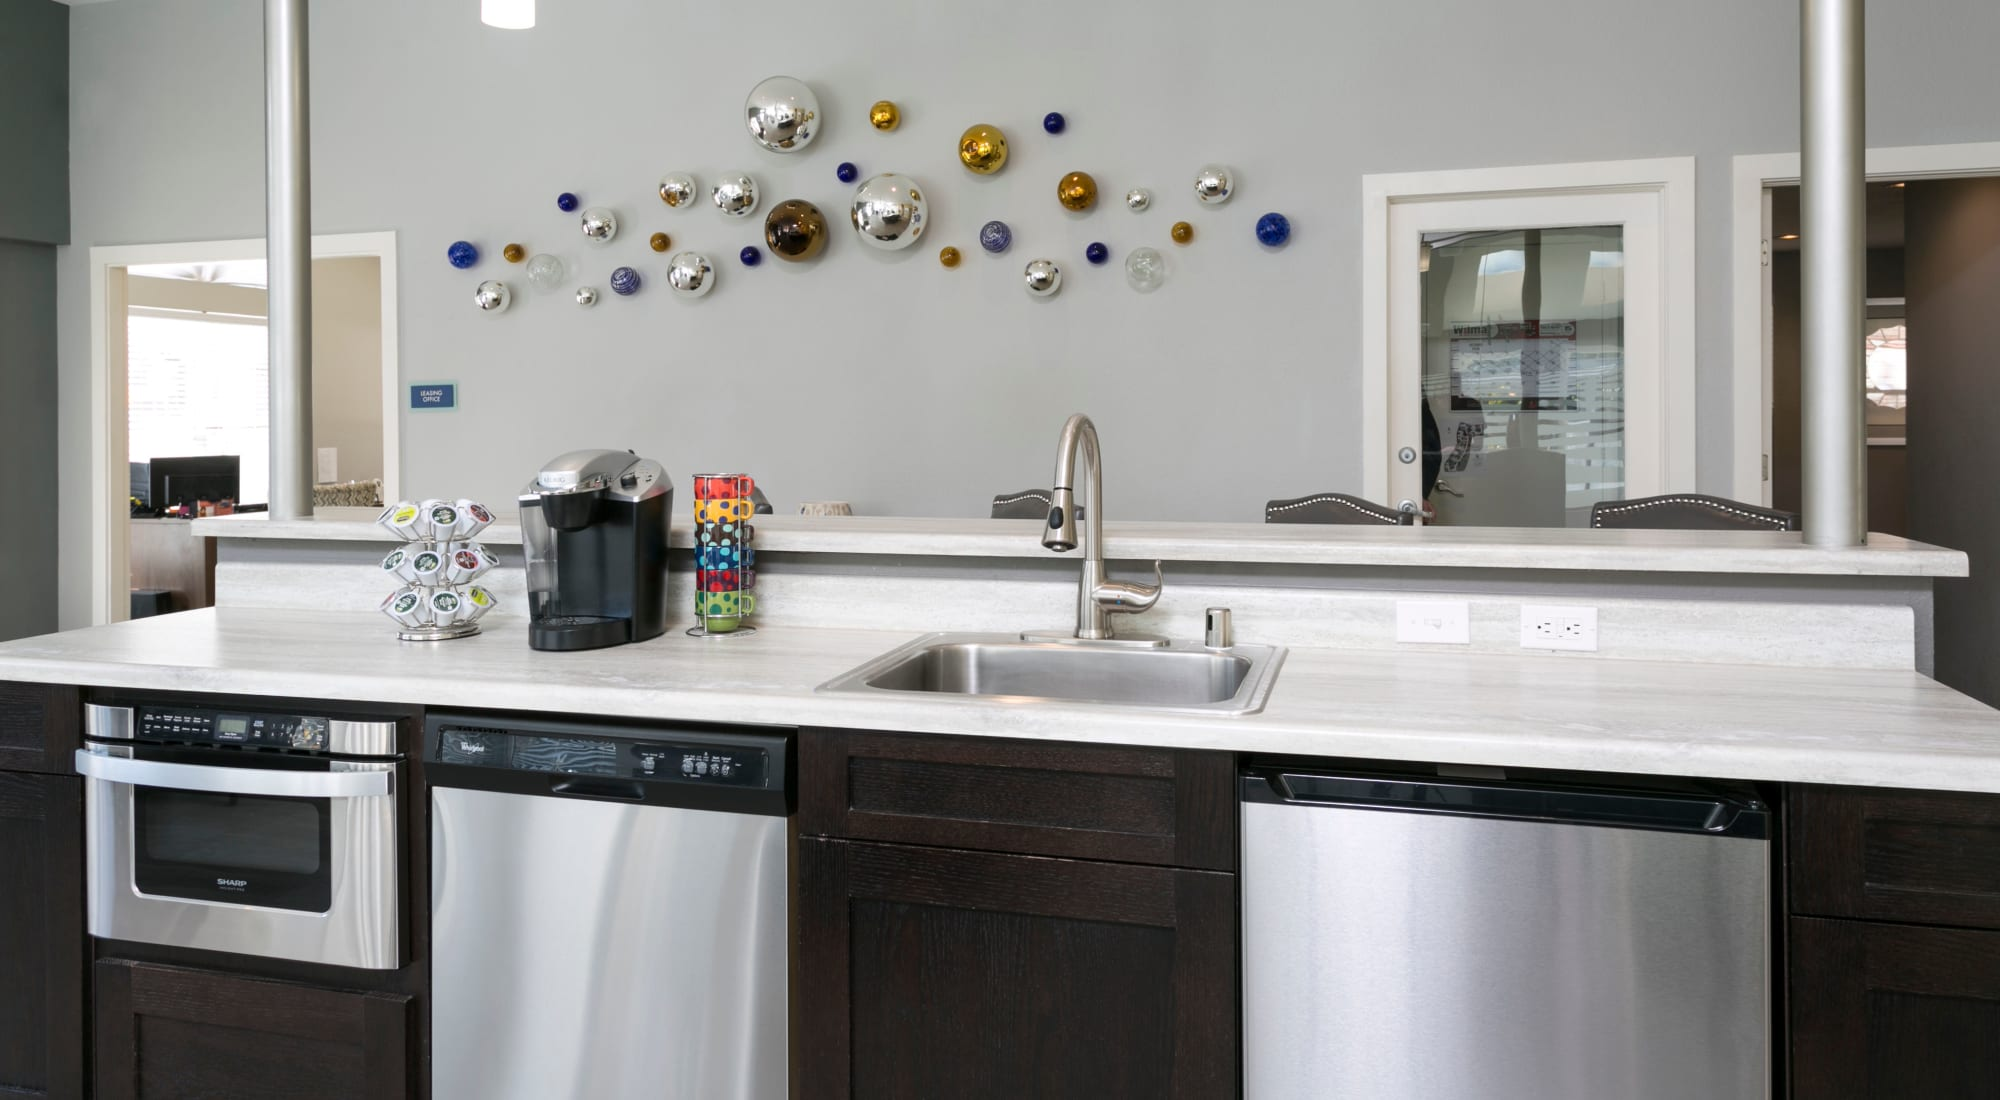 Photo gallery at Waterfield Court Apartment Homes in Aurora, Colorado